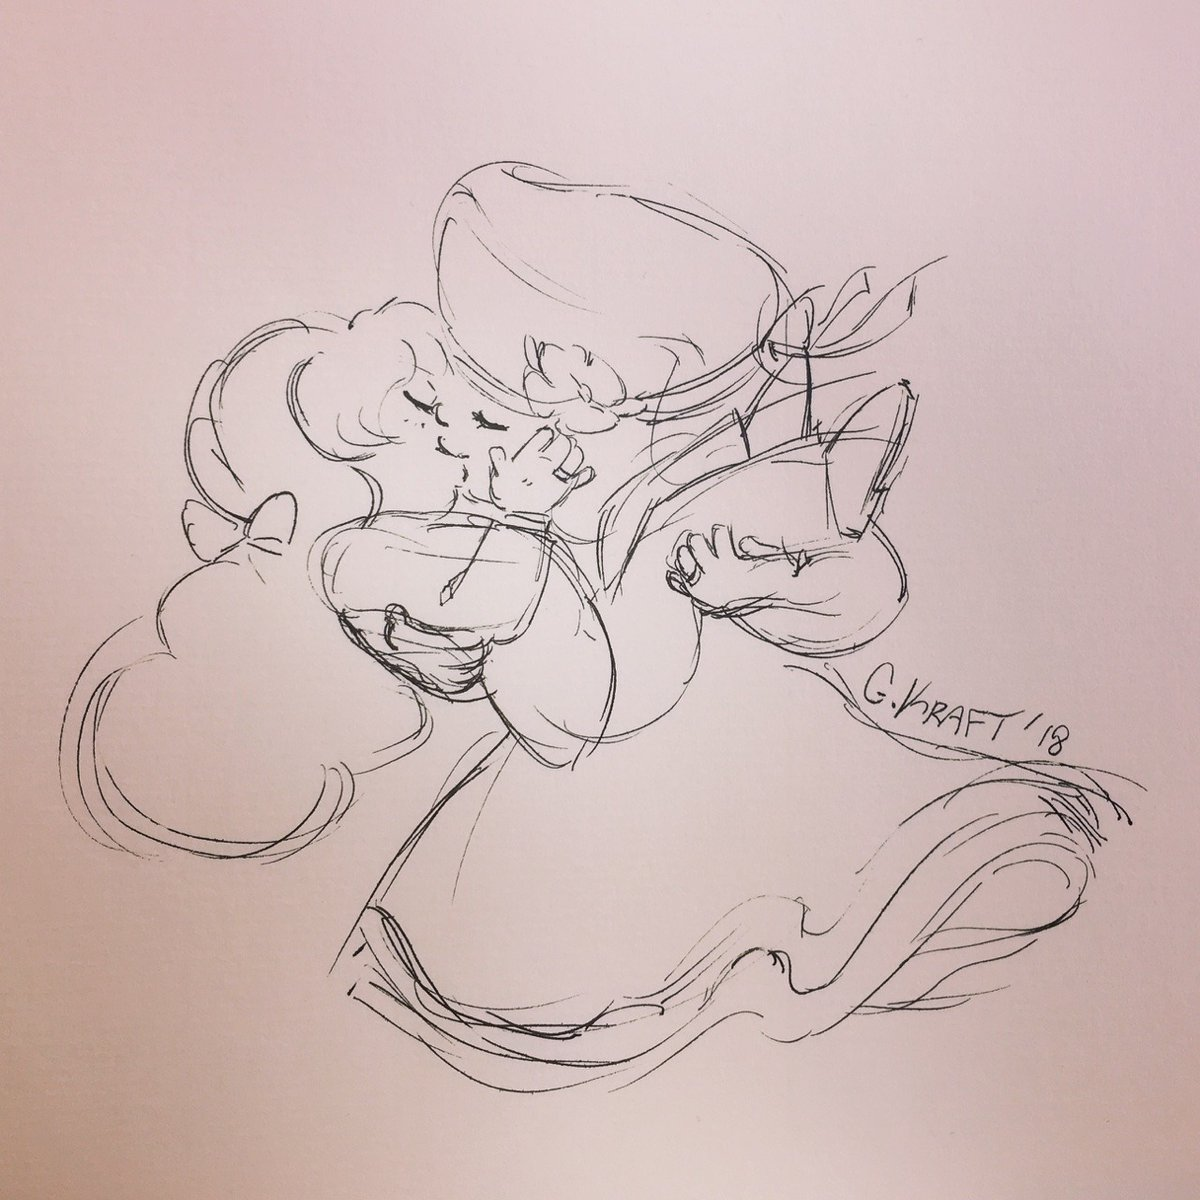 Reposting some older artwork for the Ruby and Sapphire wedding anniversary. The first sketch I did after the premiere and the second I used the same pose for my fusion series~ #StevenUniverse #Rupphire<br>http://pic.twitter.com/rNHe8pf8Rv